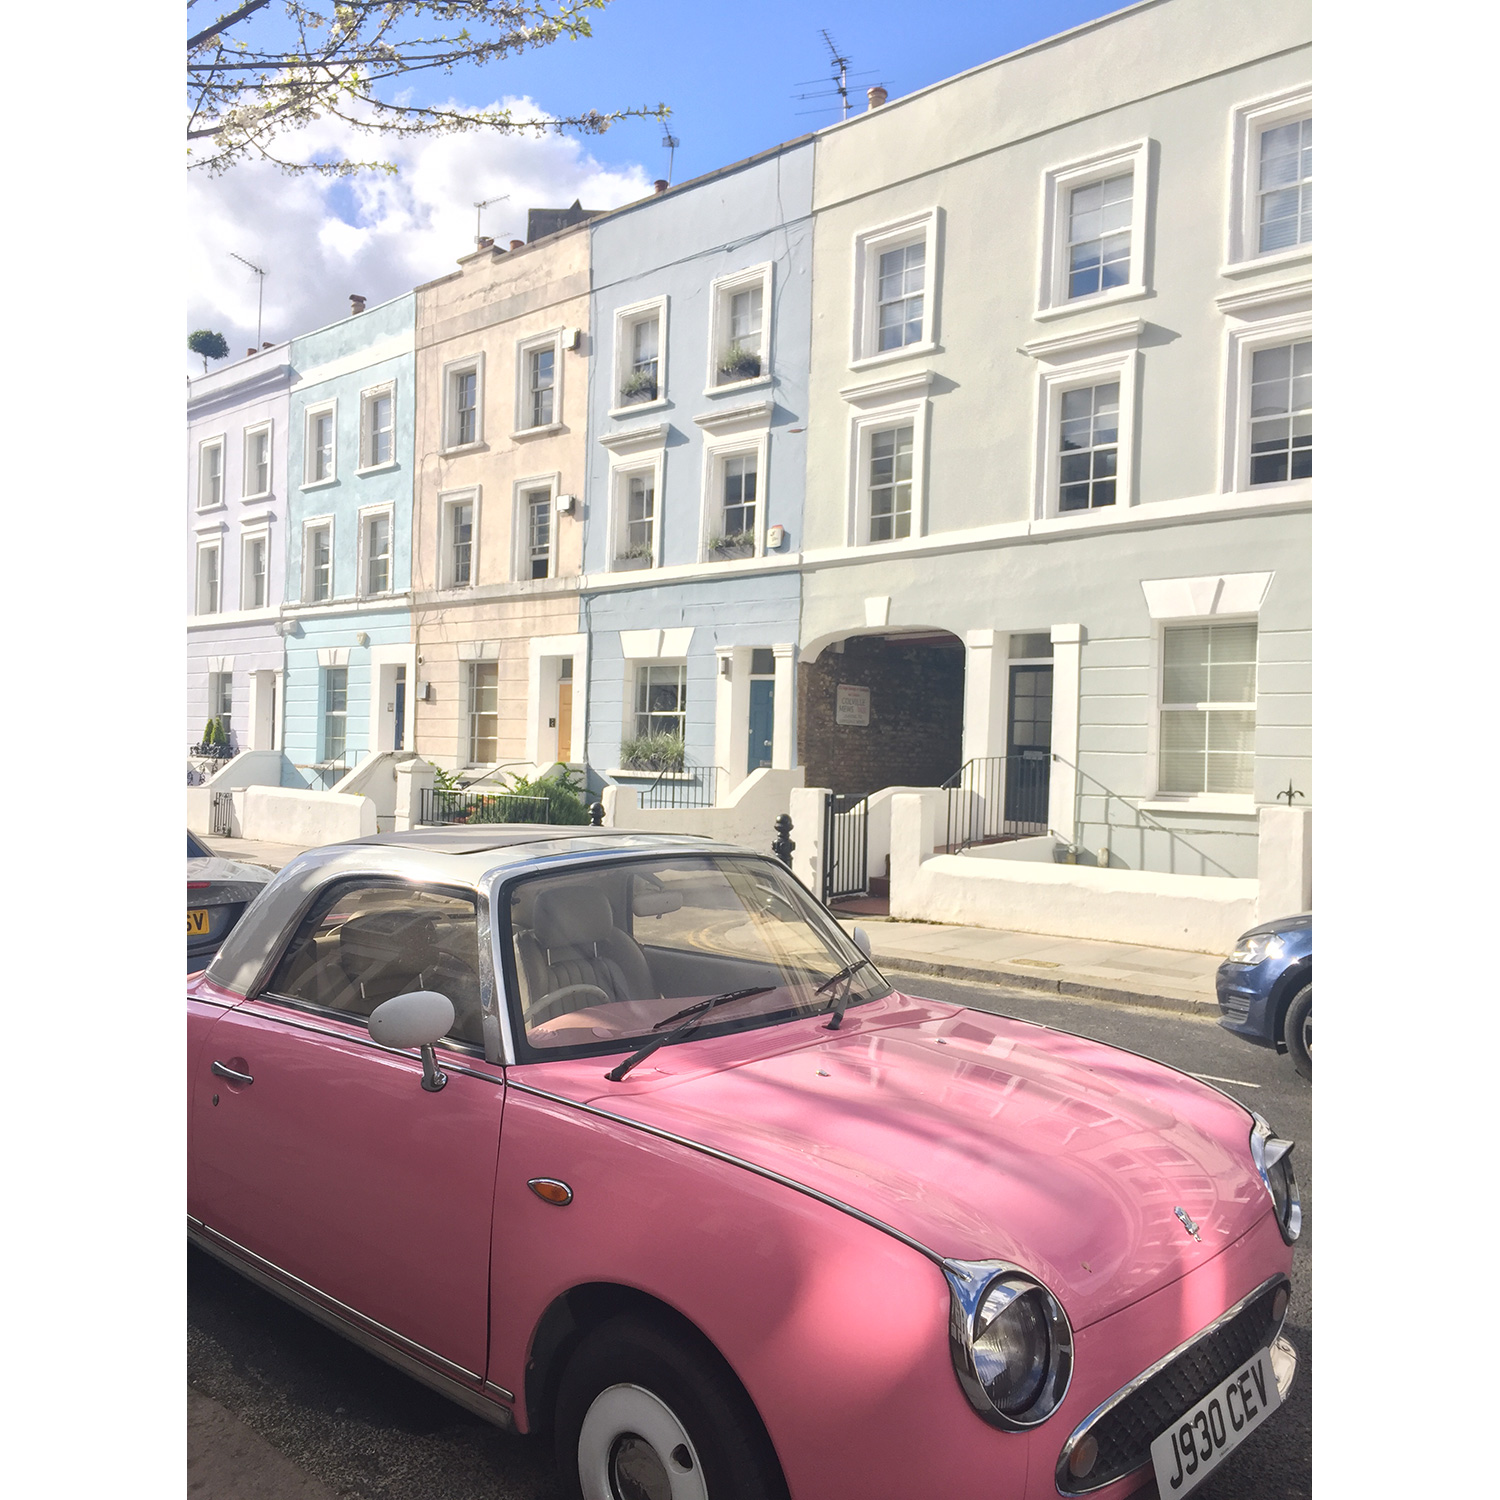 Bubblegum pink Figaro + pastel Notting Hill house perfection